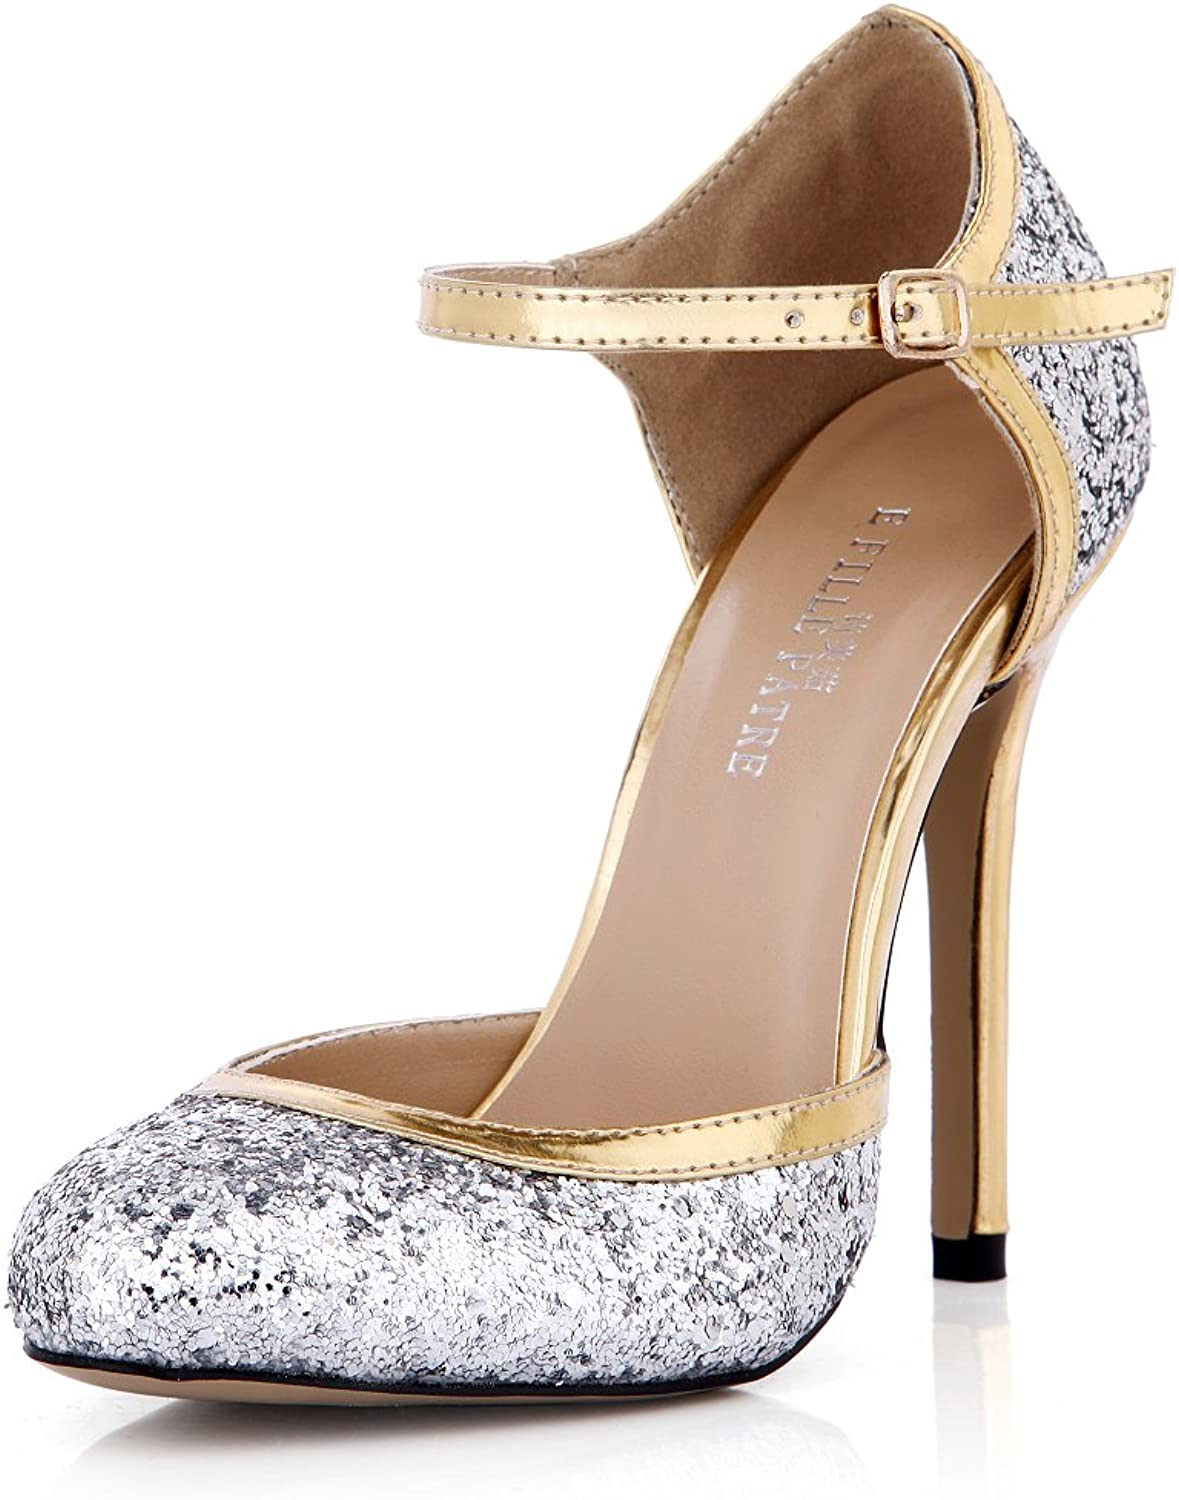 DolphinGirl Women Fashion Glitter Silver golden Heel Pointy Toe 12CM High Heels Dress Pumps Strap Stiletto shoes SM00106